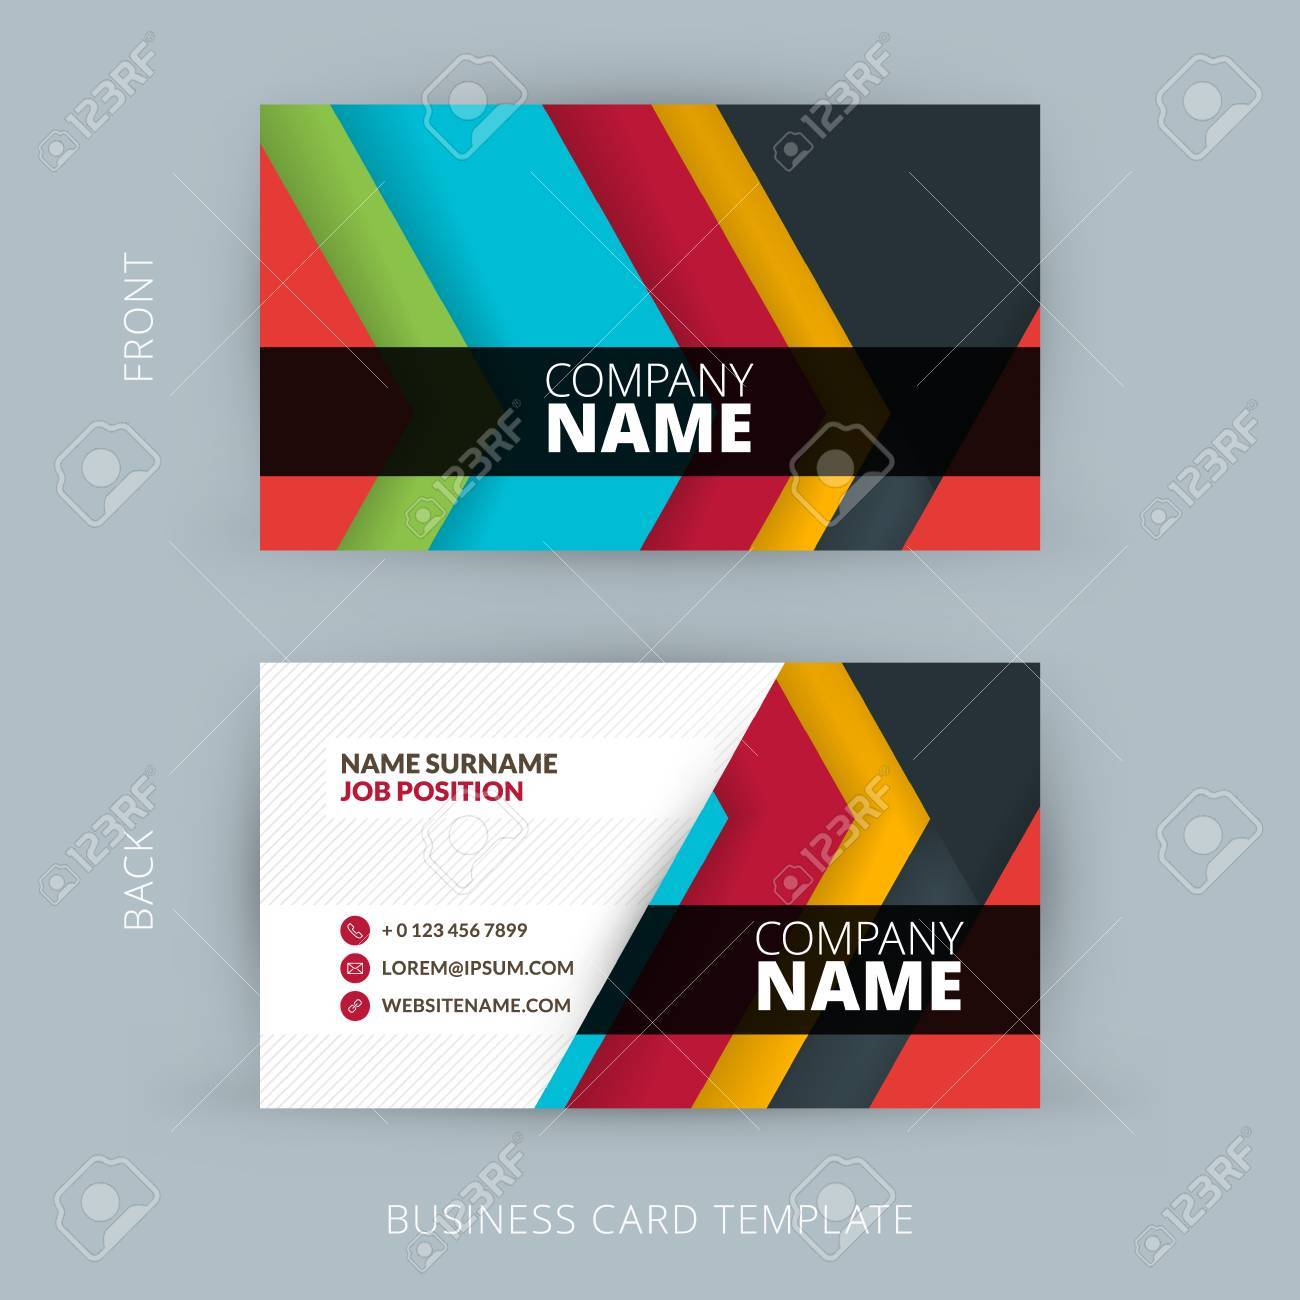 Lic Business Card Image collections - Free Business Cards